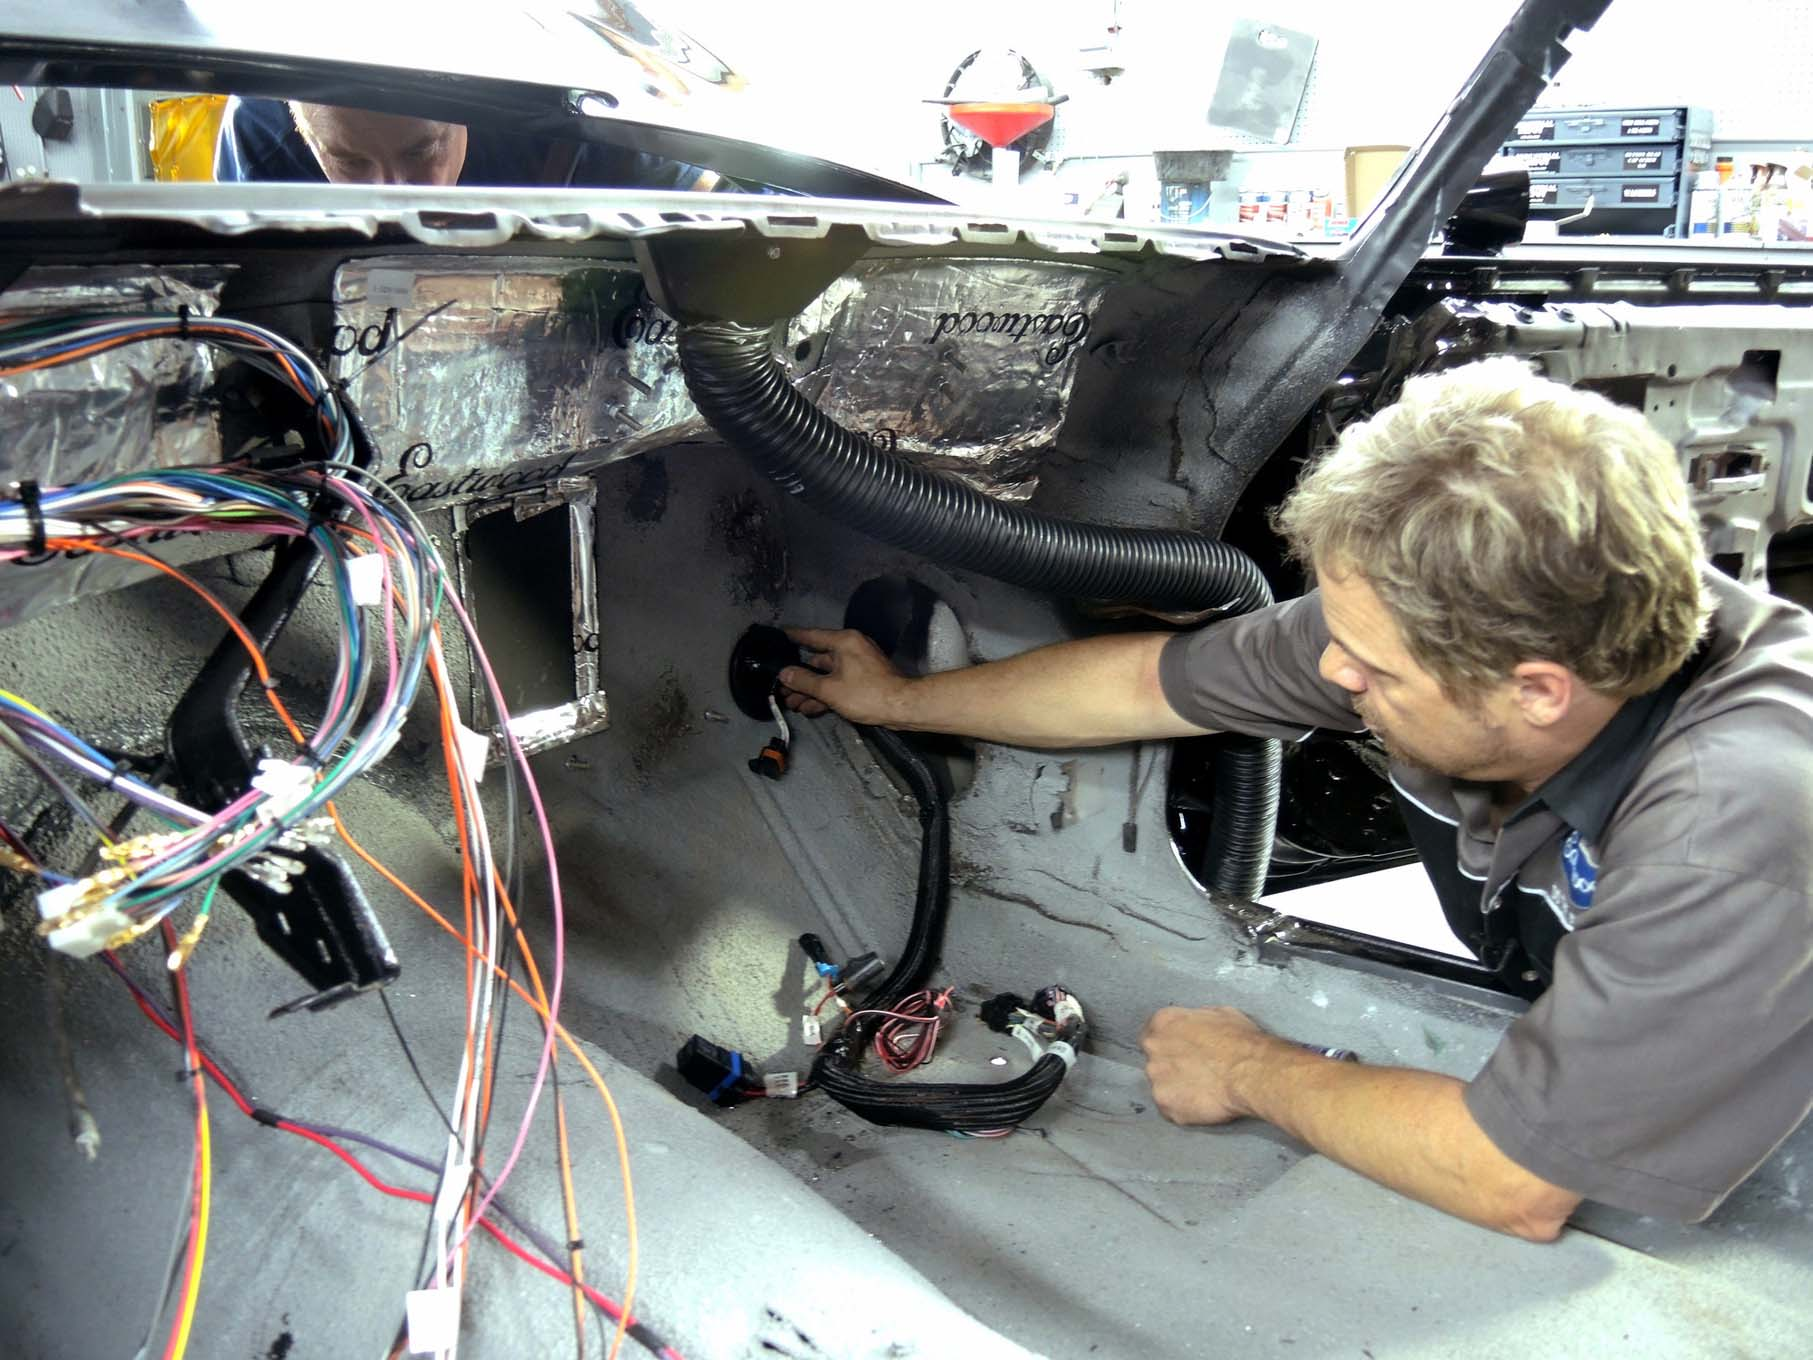 how to rewire a car wiring upgrade for project zedsled car craft s auto wiring shop auto wiring shop [ 1813 x 1360 Pixel ]